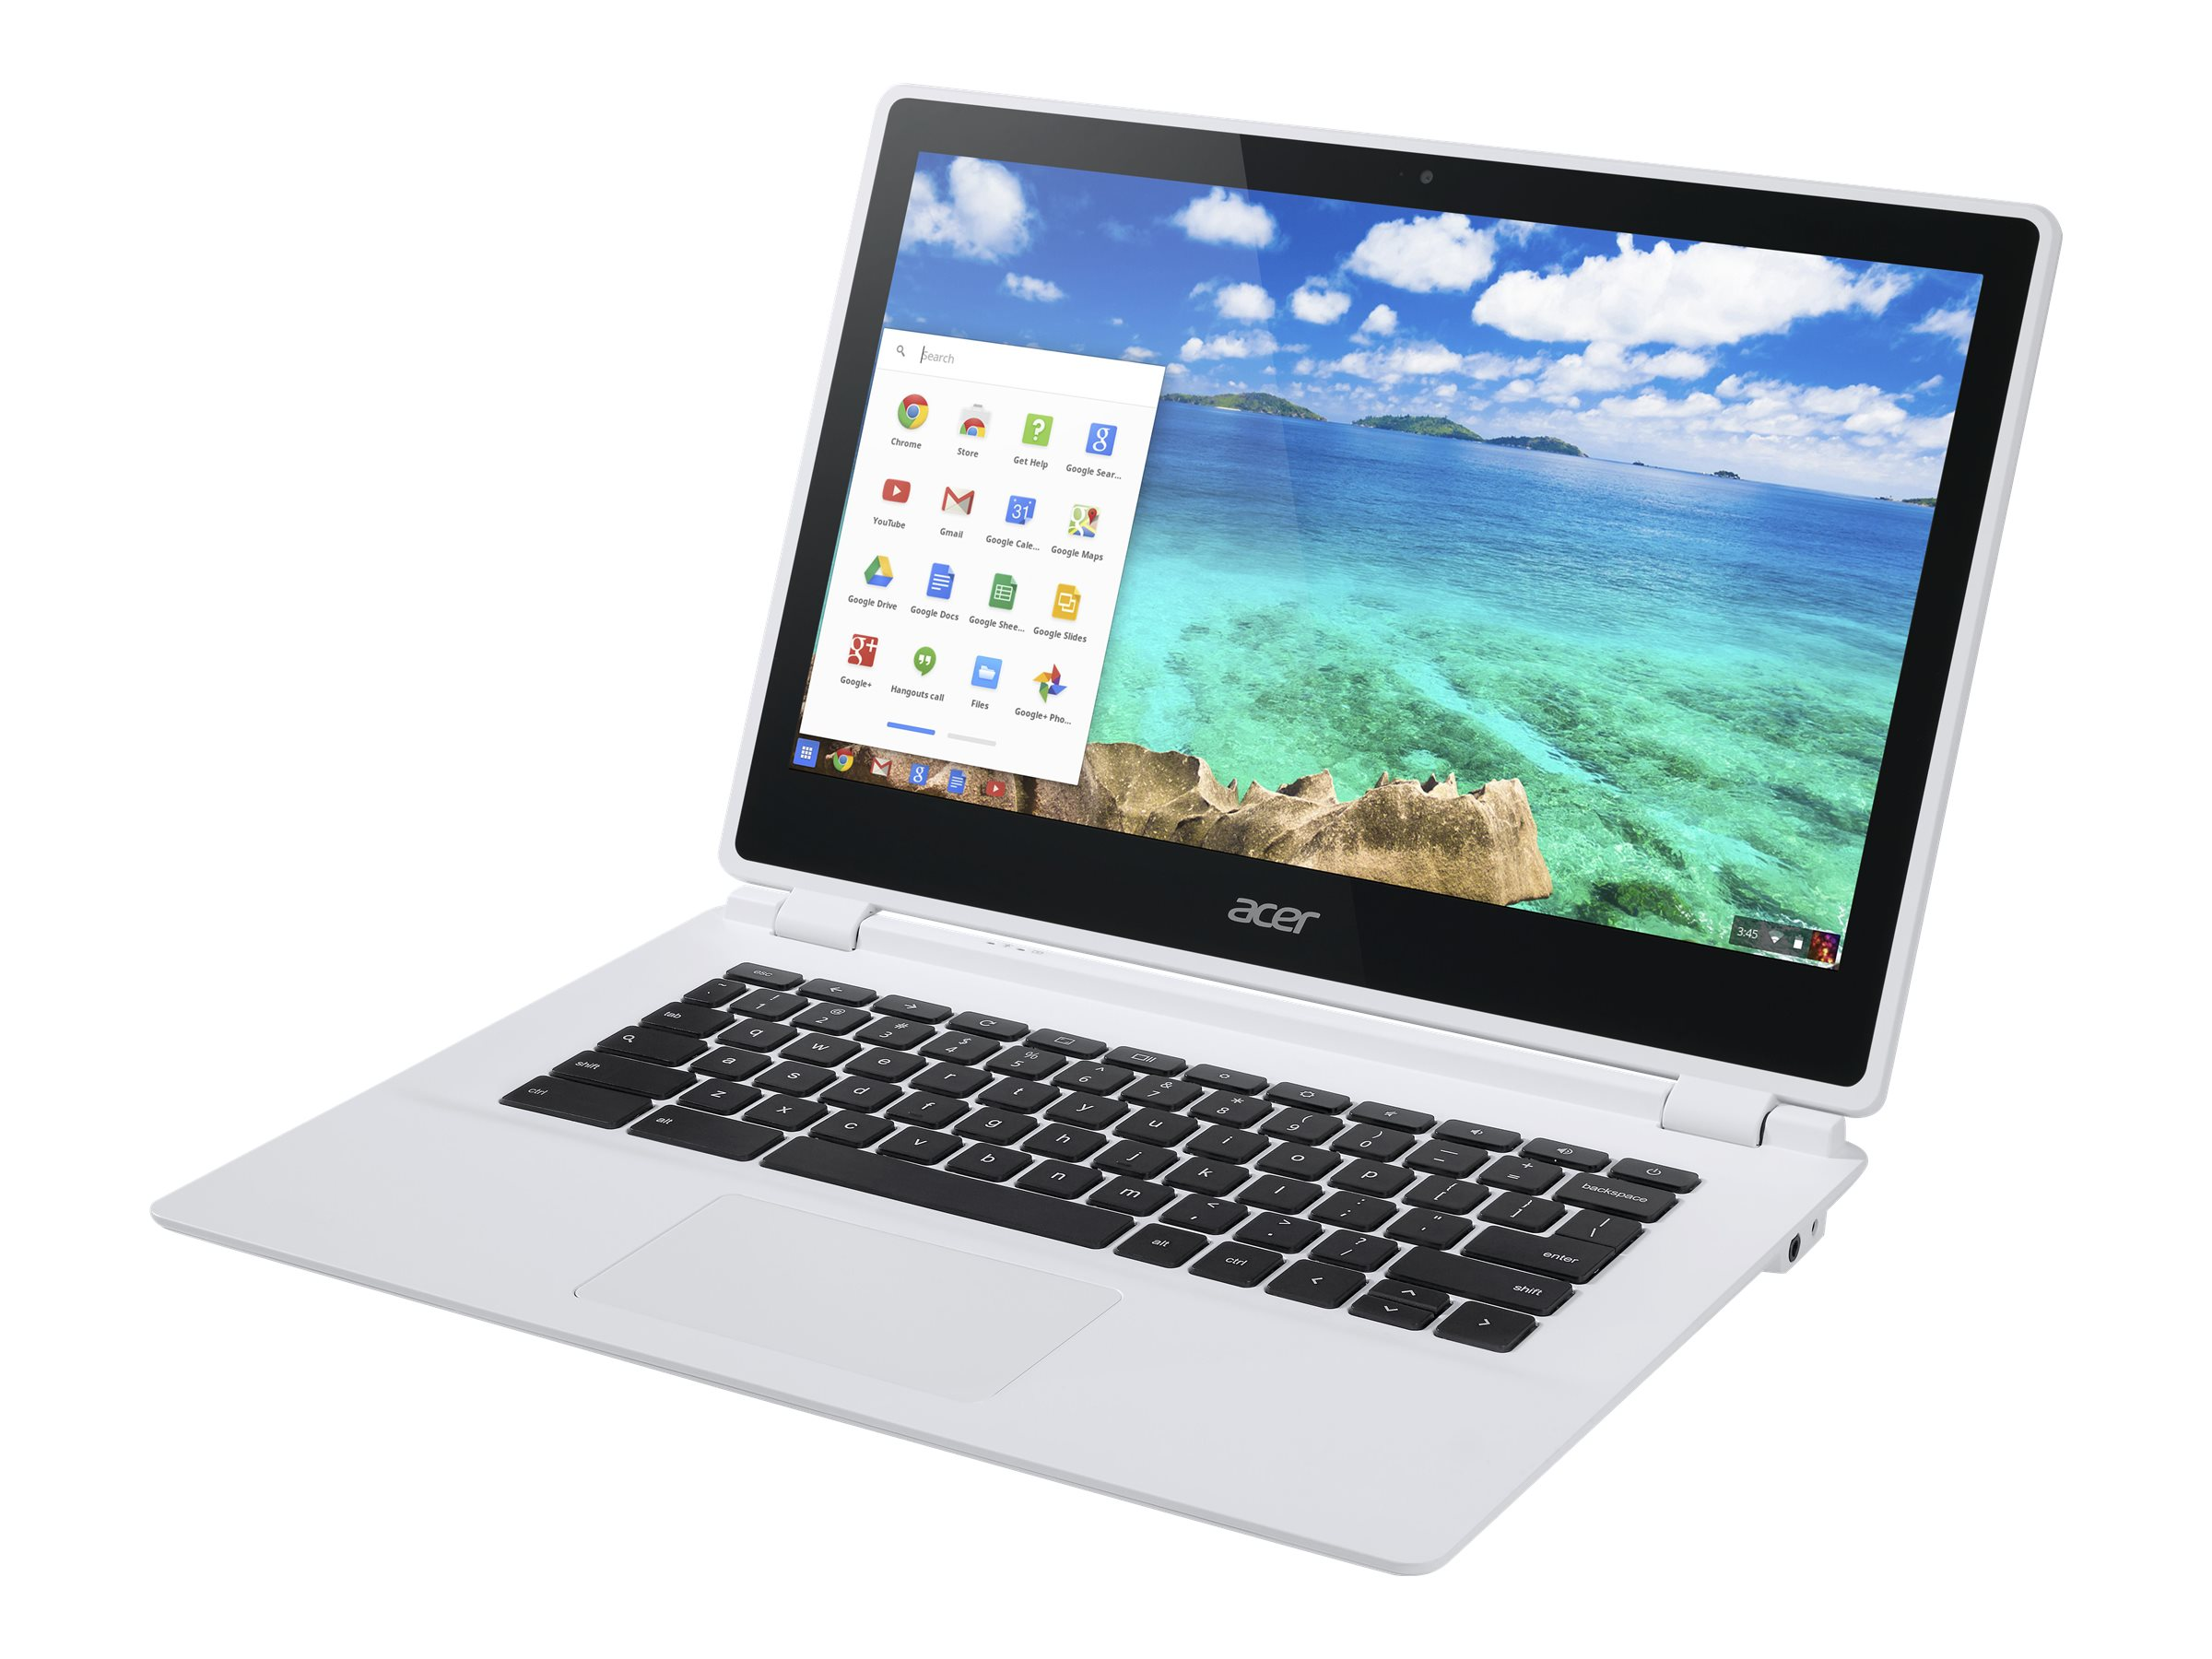 Acer Chromebook CB5-311P-T9AB 2.1GHz Tegra K1 13.3in display, NX.MRDAA.003, 18373180, Notebooks